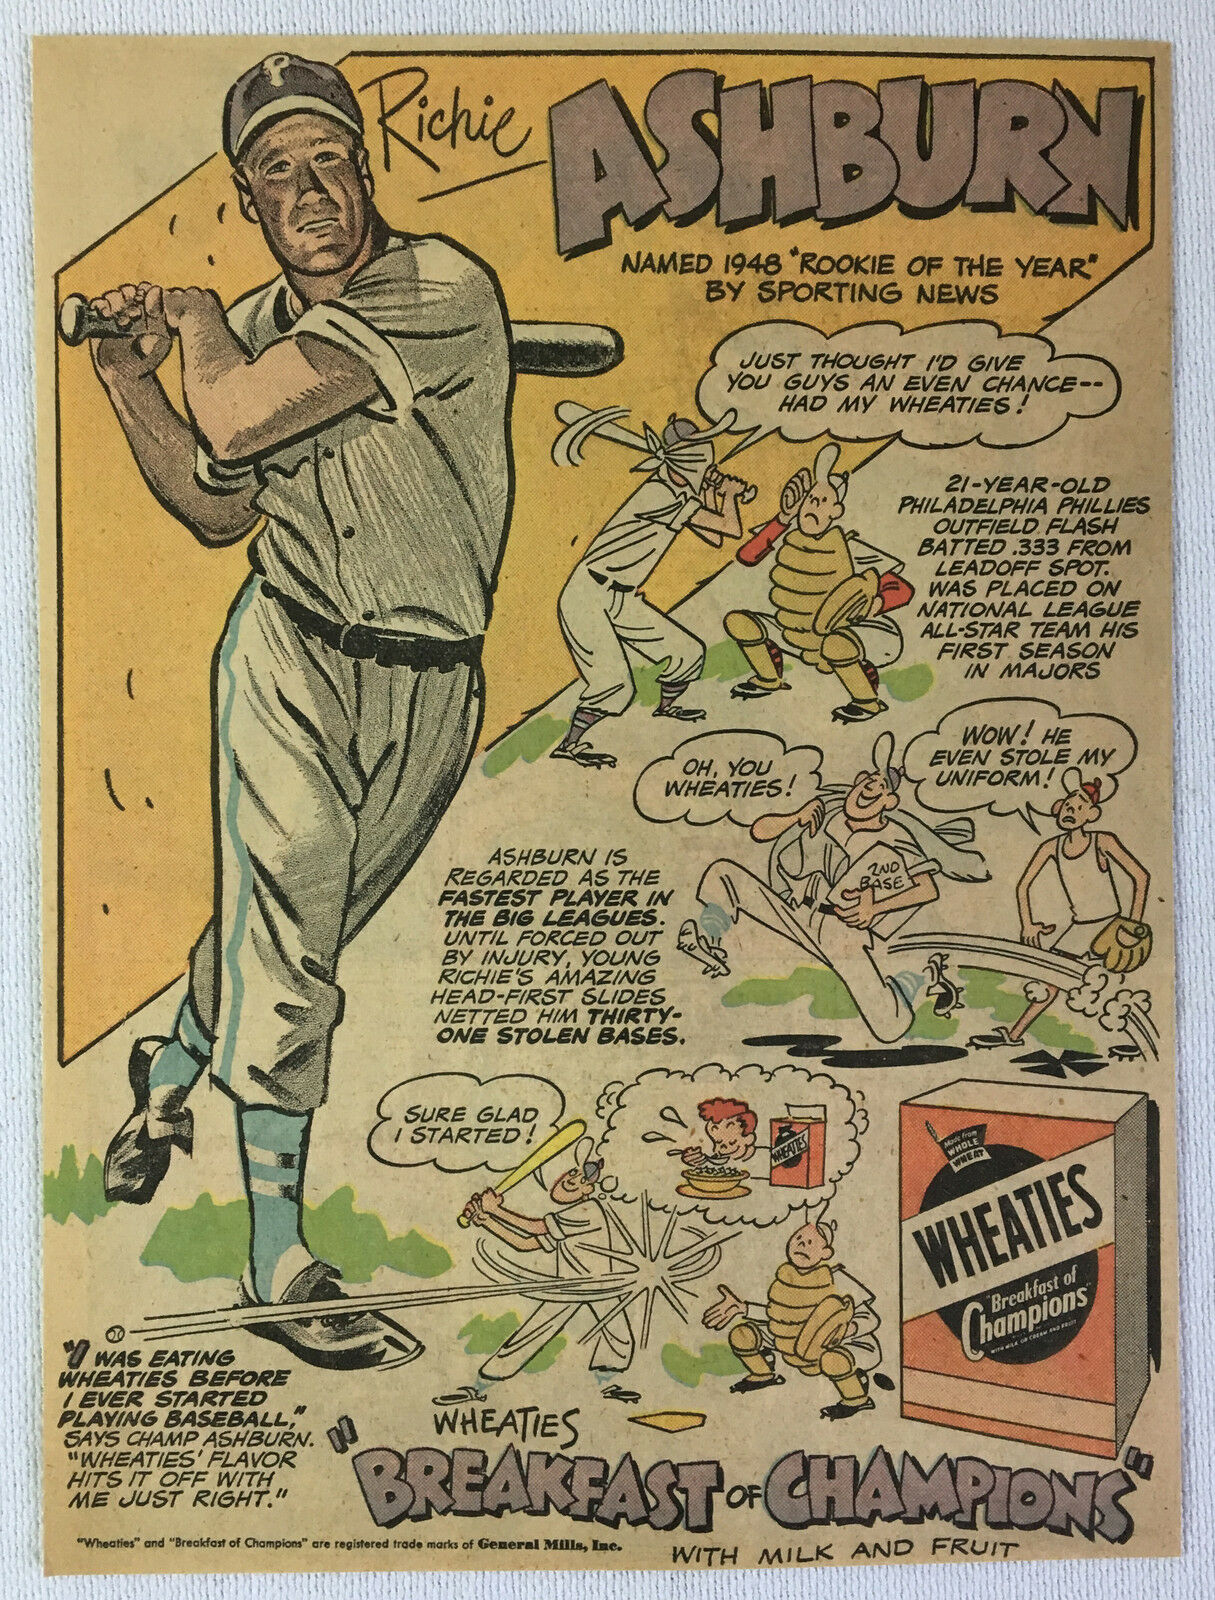 1949 Wheaties Richie Ashburn Cartoon Ad Seite  Philadelphia Phillies Phillies Phillies Baseball ef3e47